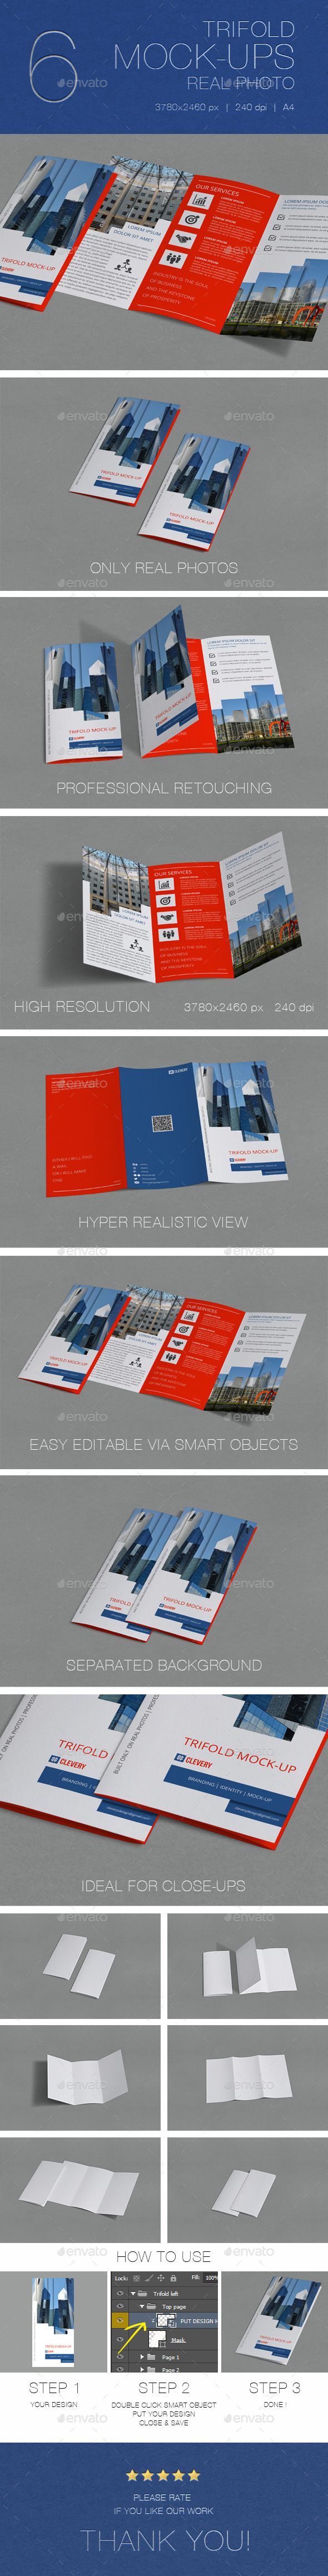 GraphicRiver Trifold Brochure Mock-Up 11388205